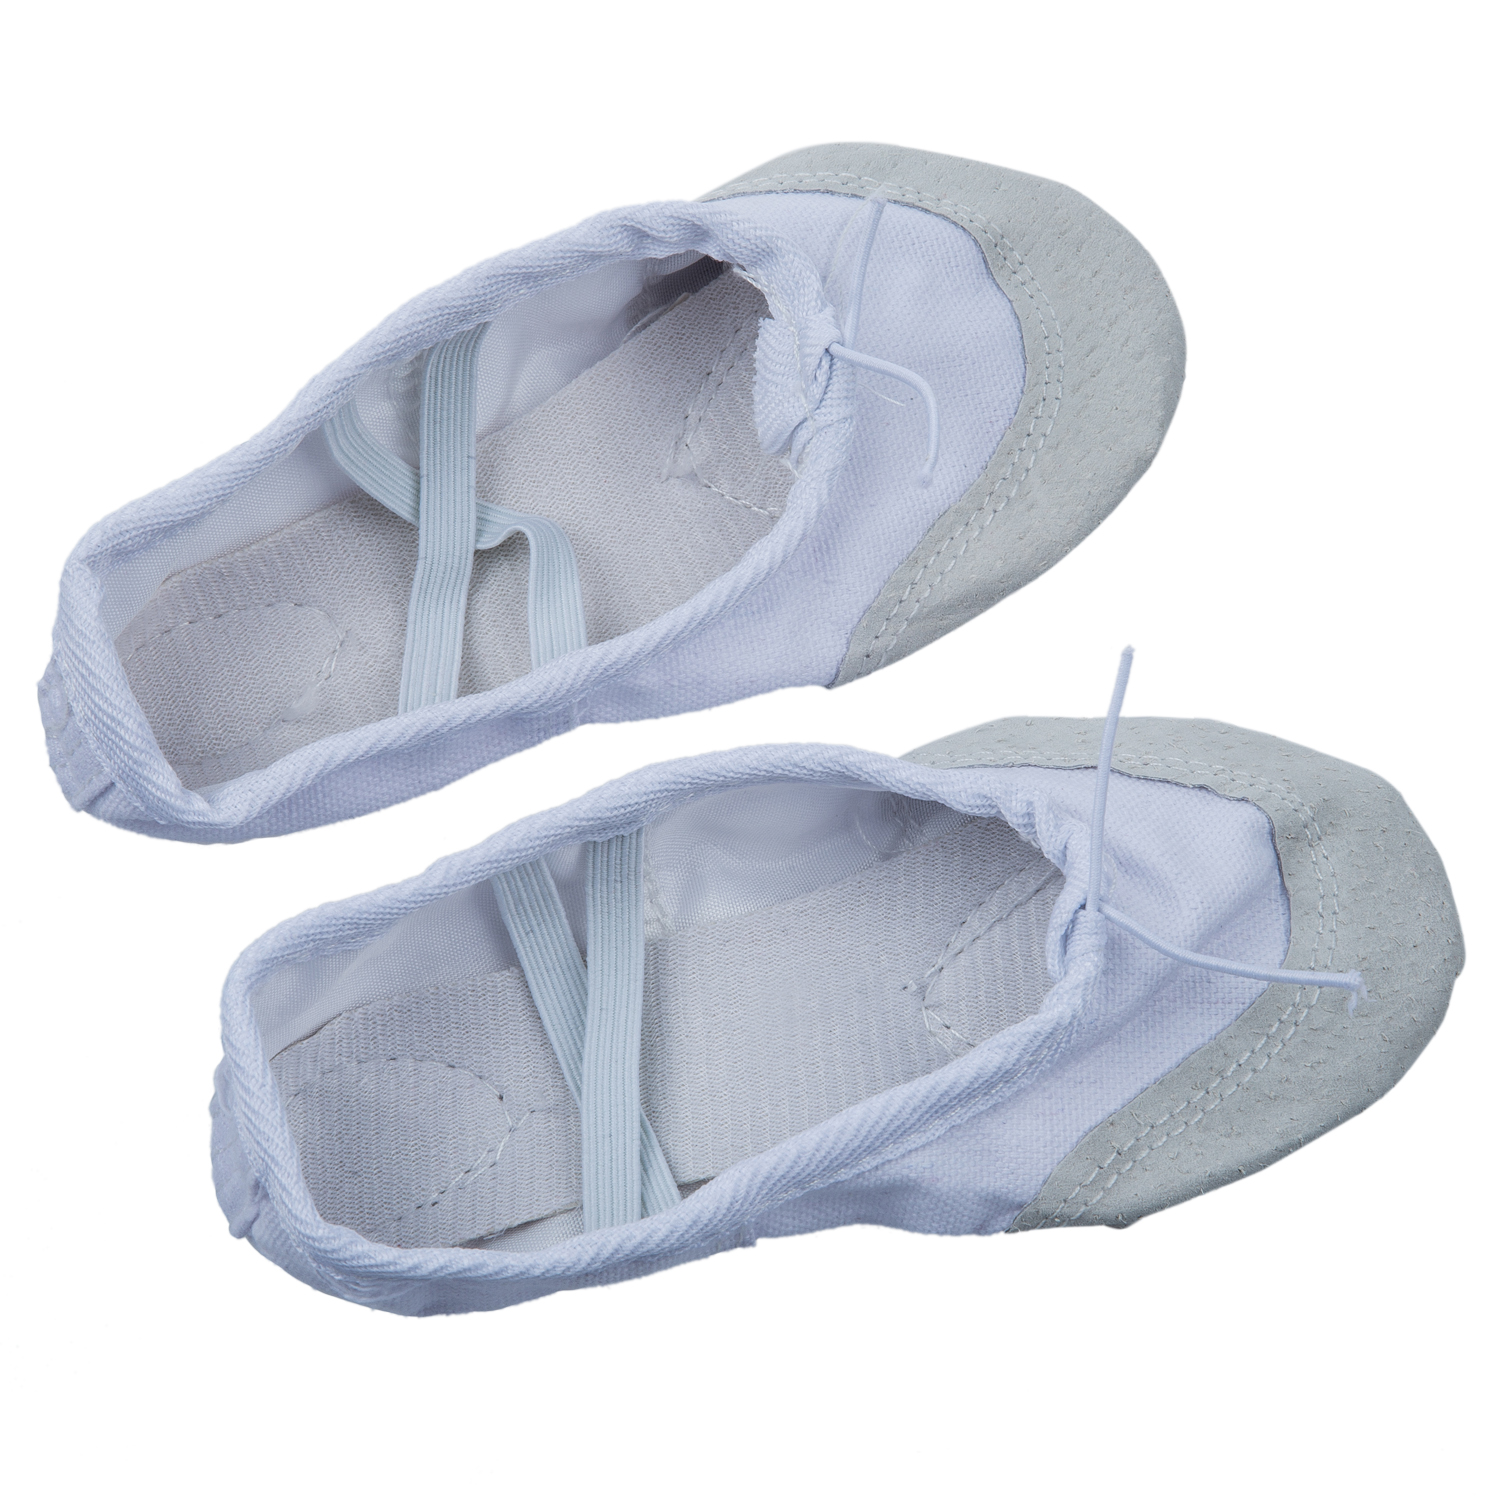 5 PCS Canvas Ballet  Slippers for Kids UK Size 10 (6 2/3 Inches)